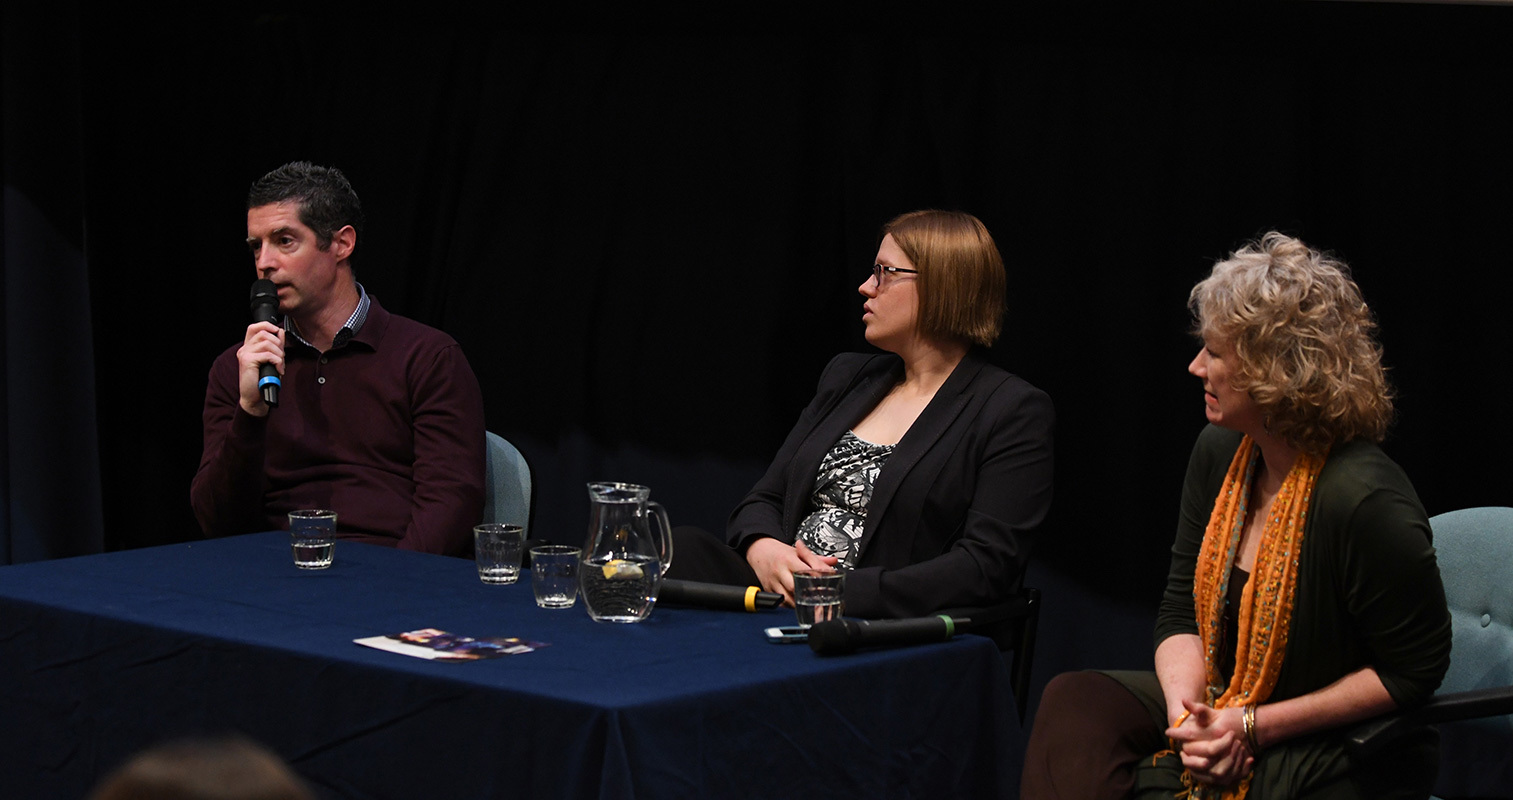 From left: Nicky Murray,  Dr Tamasin Knight and Dr Suzanne Zeedyk at the panel discussion following the screening.